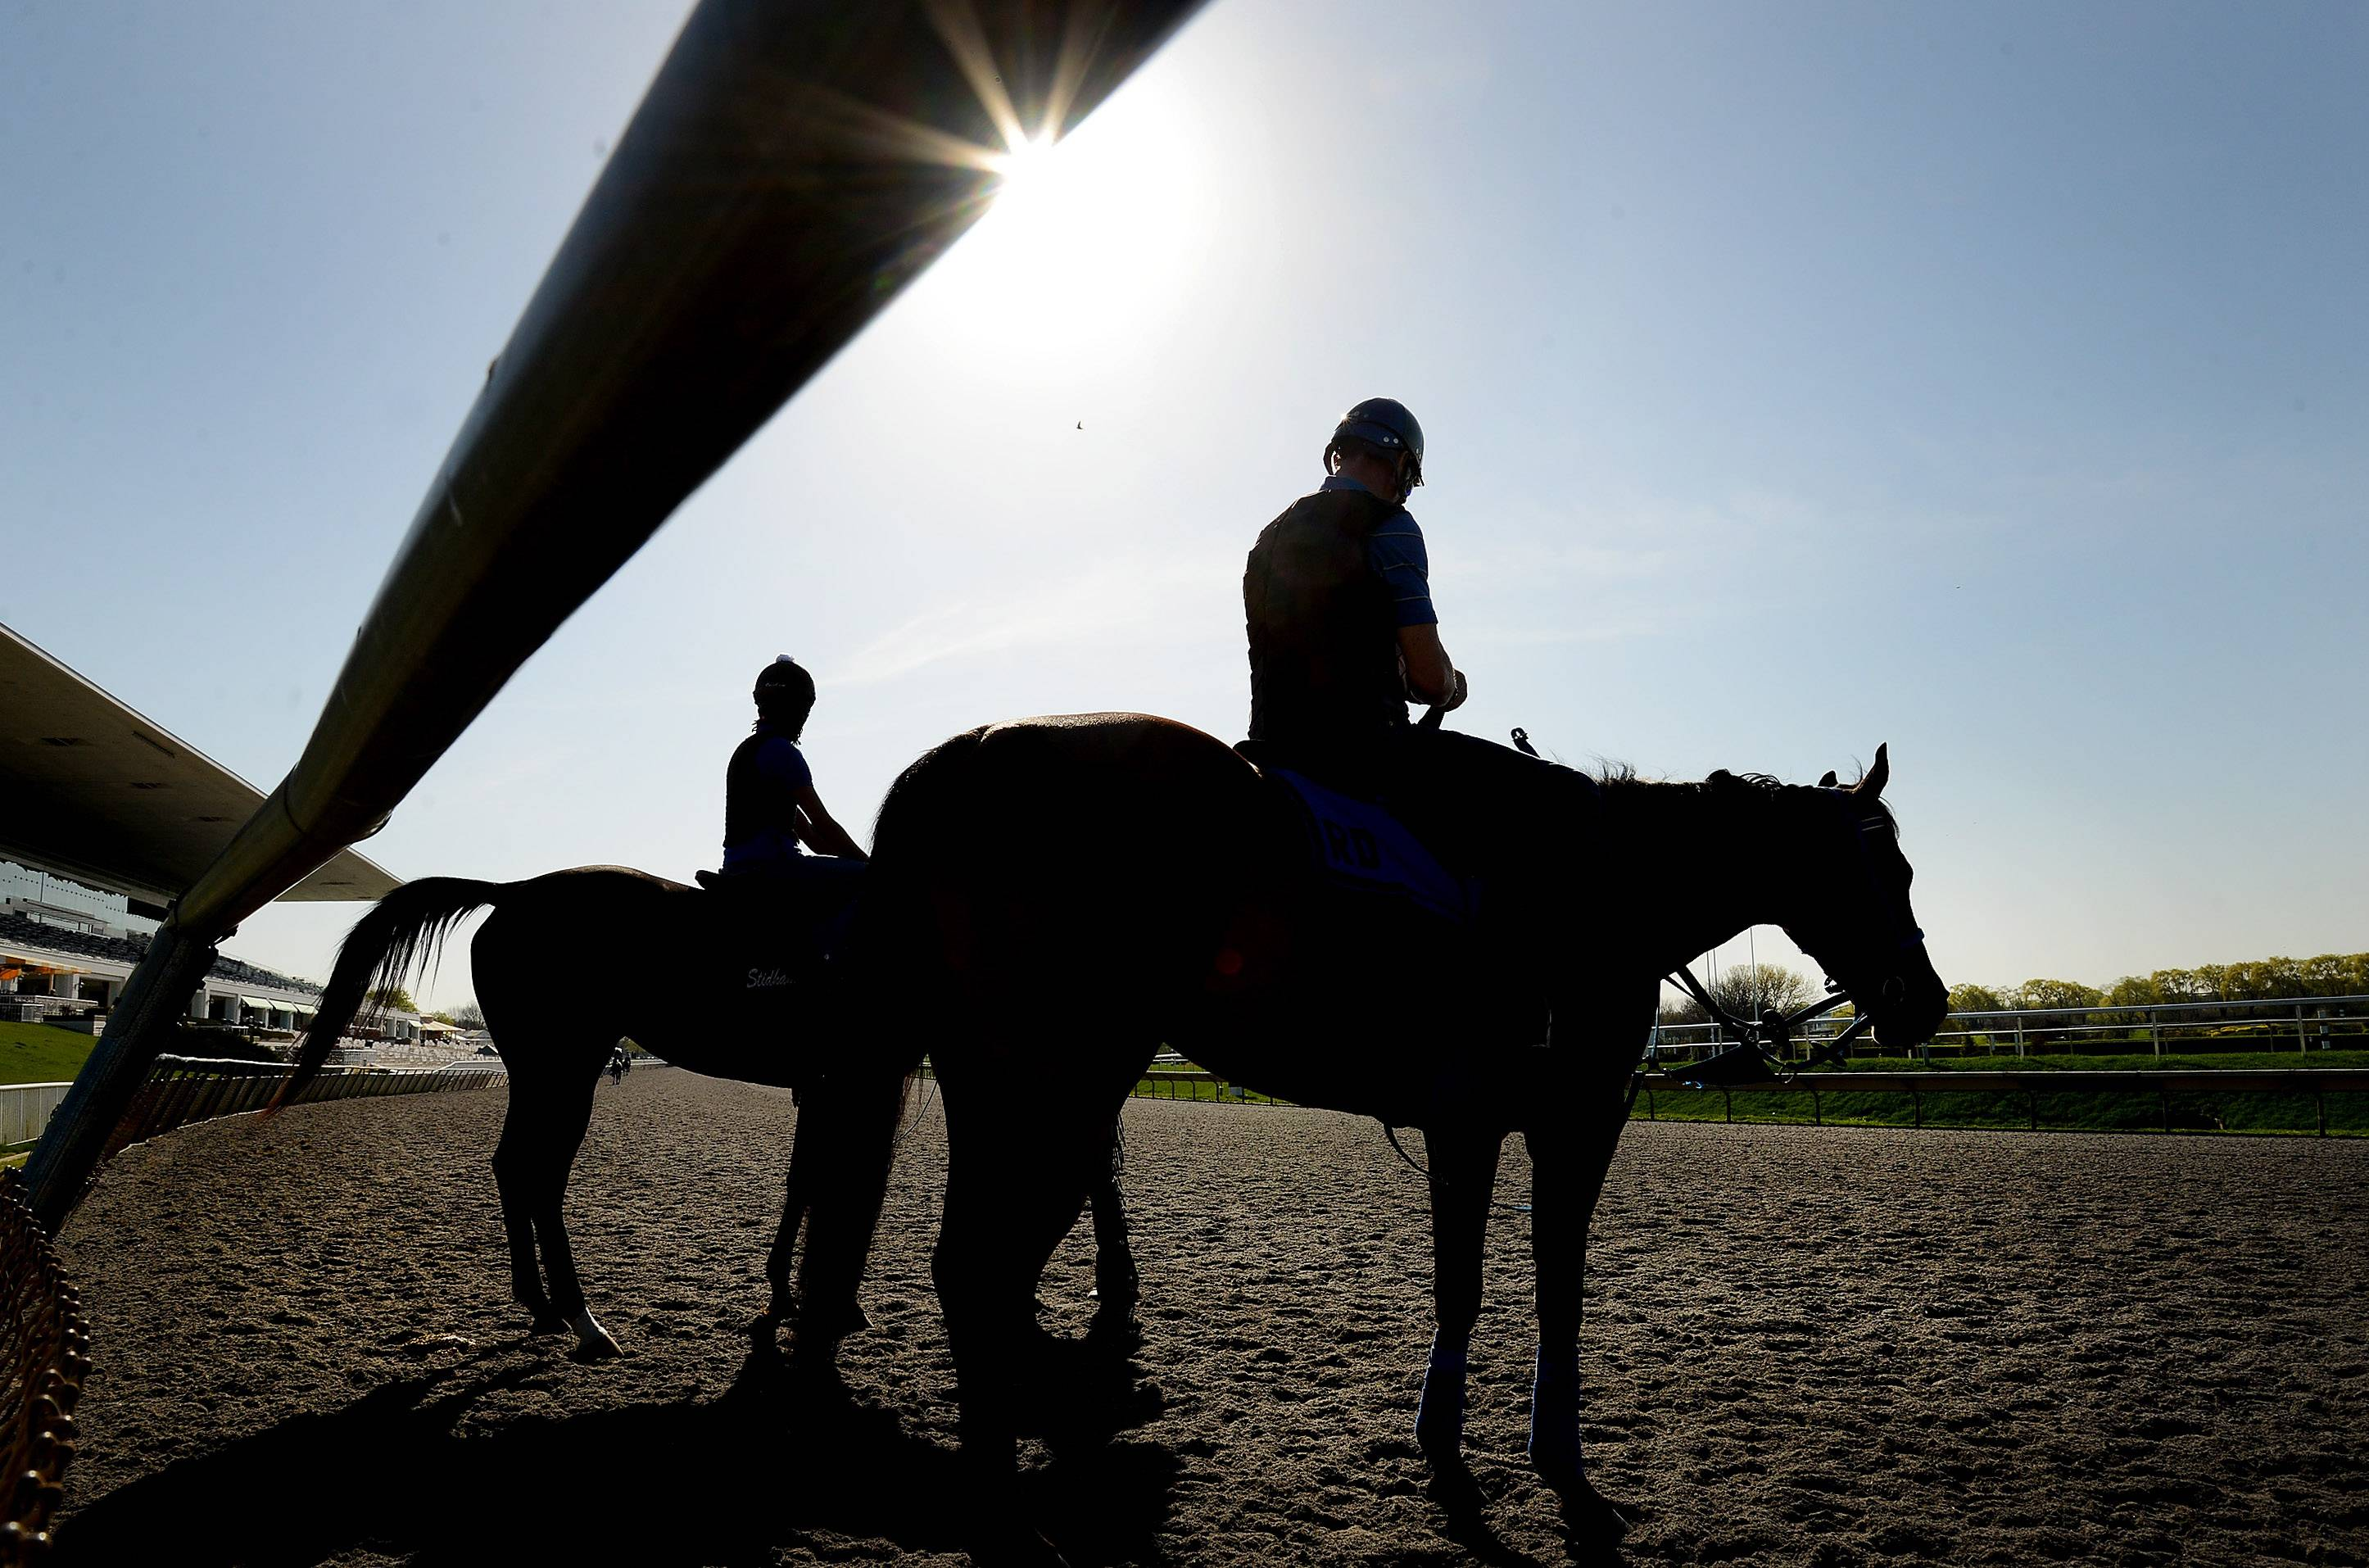 There's a certain serenity to early morning workouts at Arlington International Racecourse as these riders begin the day. Yet the death of two horses at the Preakness cast a pall over the sport.